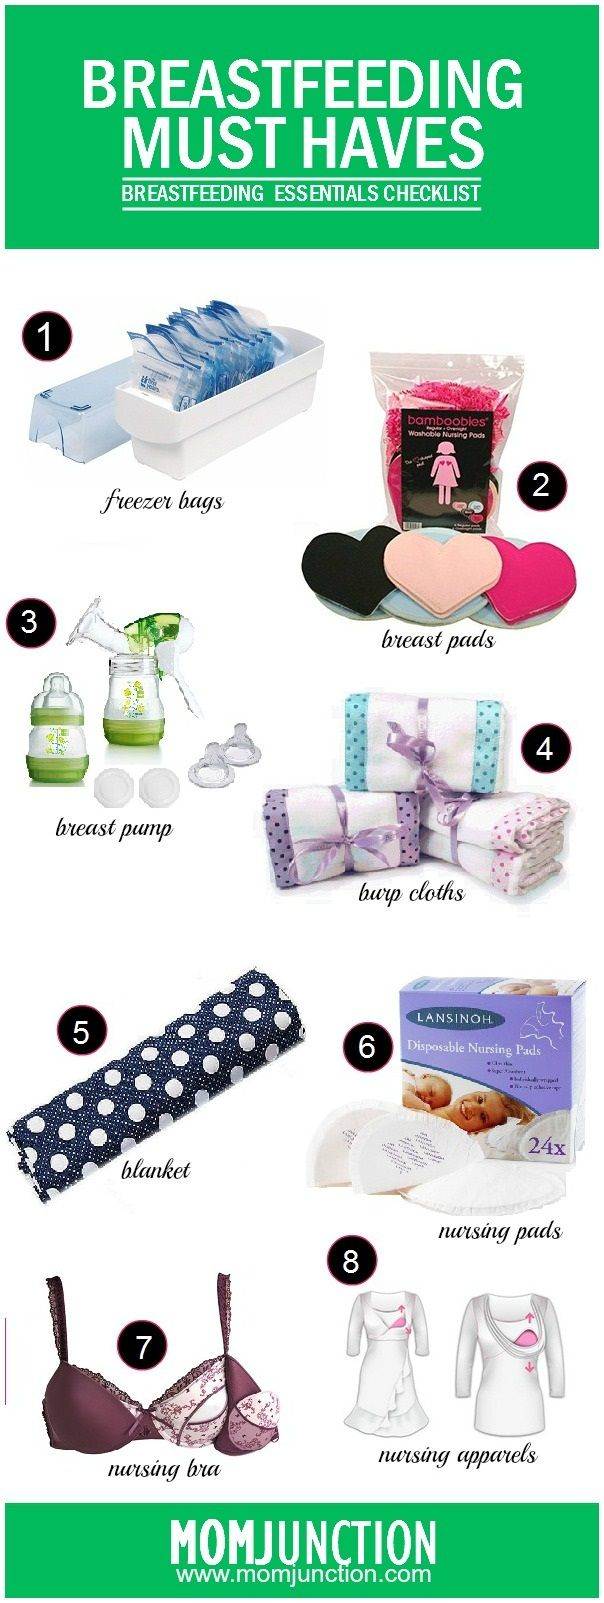 Top 11 Breastfeeding Tips For New Moms  Baby Feeding  Breastfeeding, Breastfeeding Tips, Baby-7487